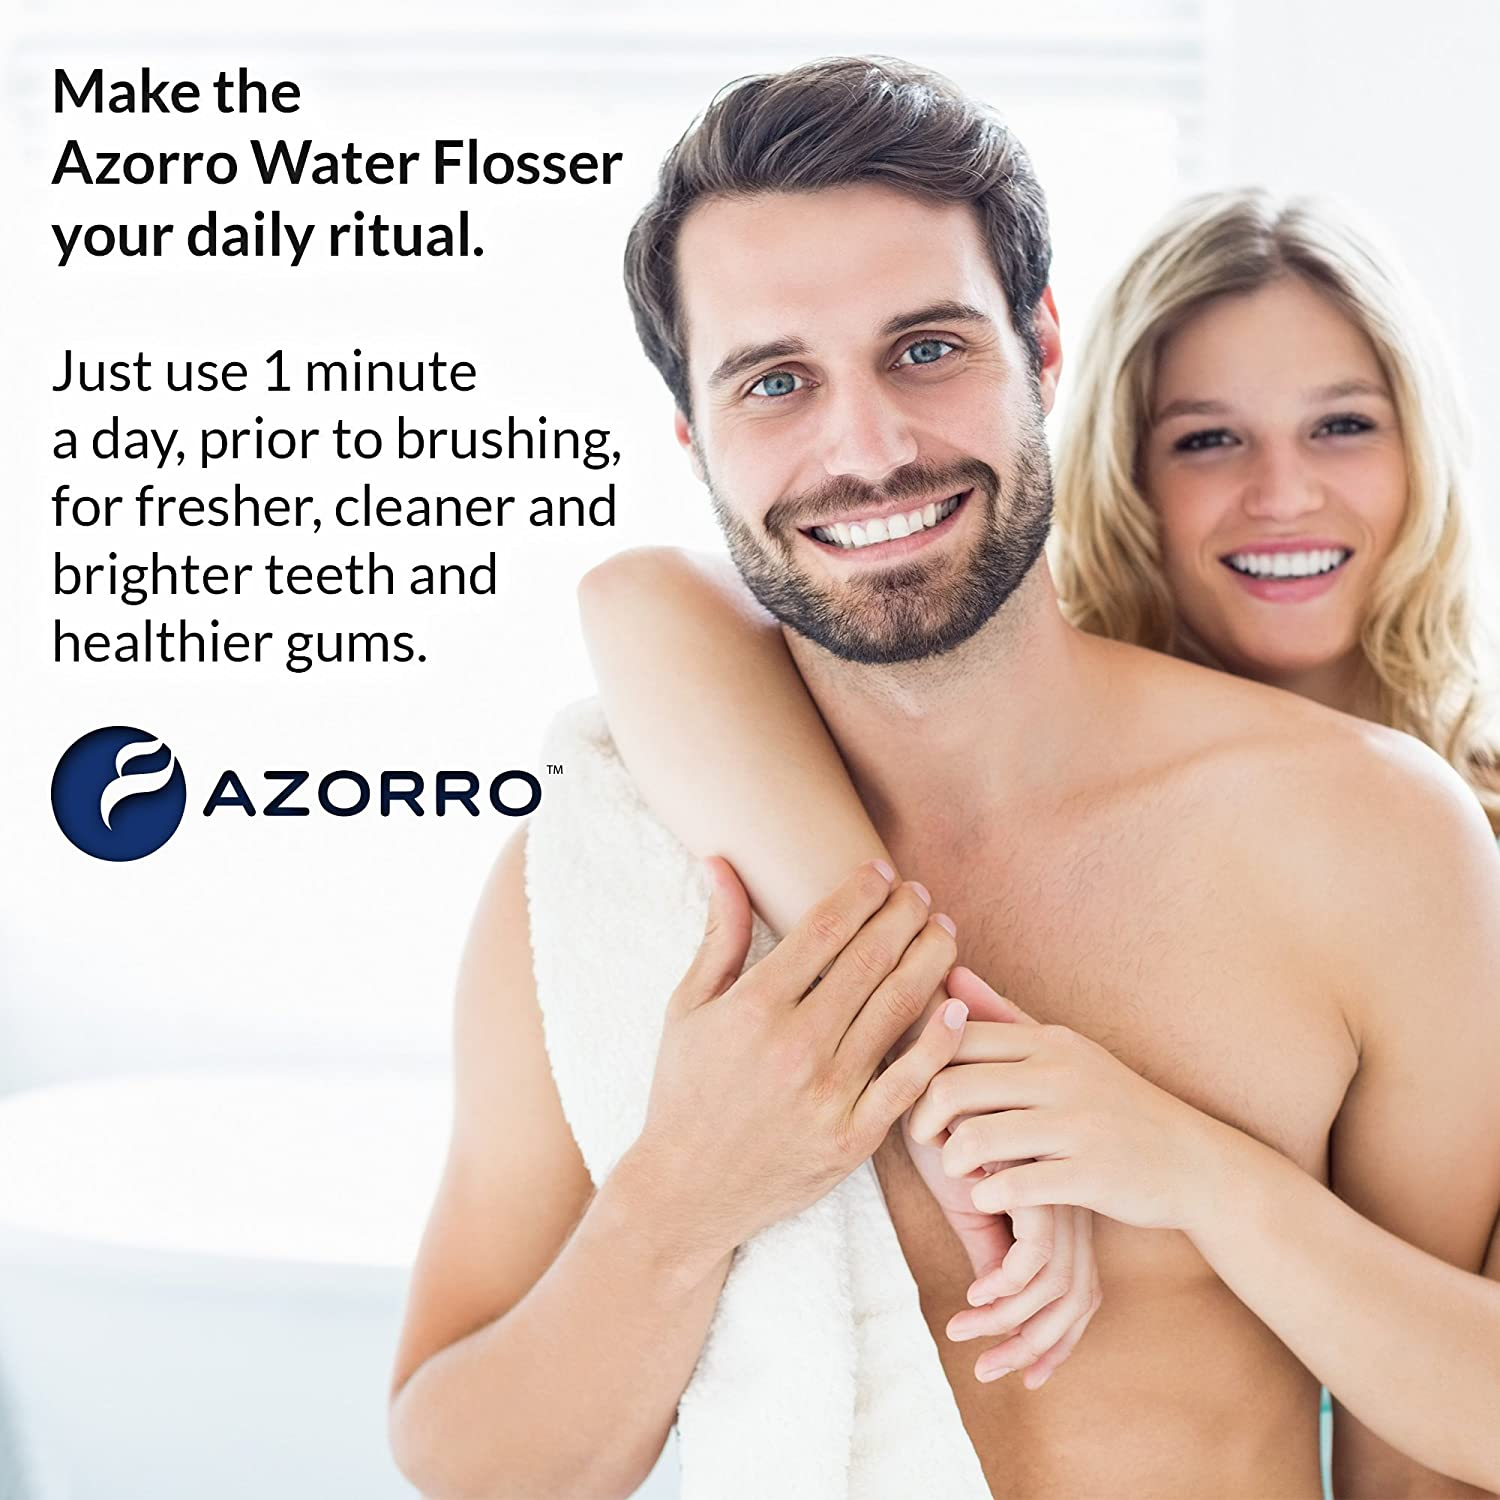 Amazon top rated water flosser fda approved cordless amazon top rated water flosser fda approved cordless rechargeable oral irrigator no batteries or electricity needed best dental care flossing solutioingenieria Gallery